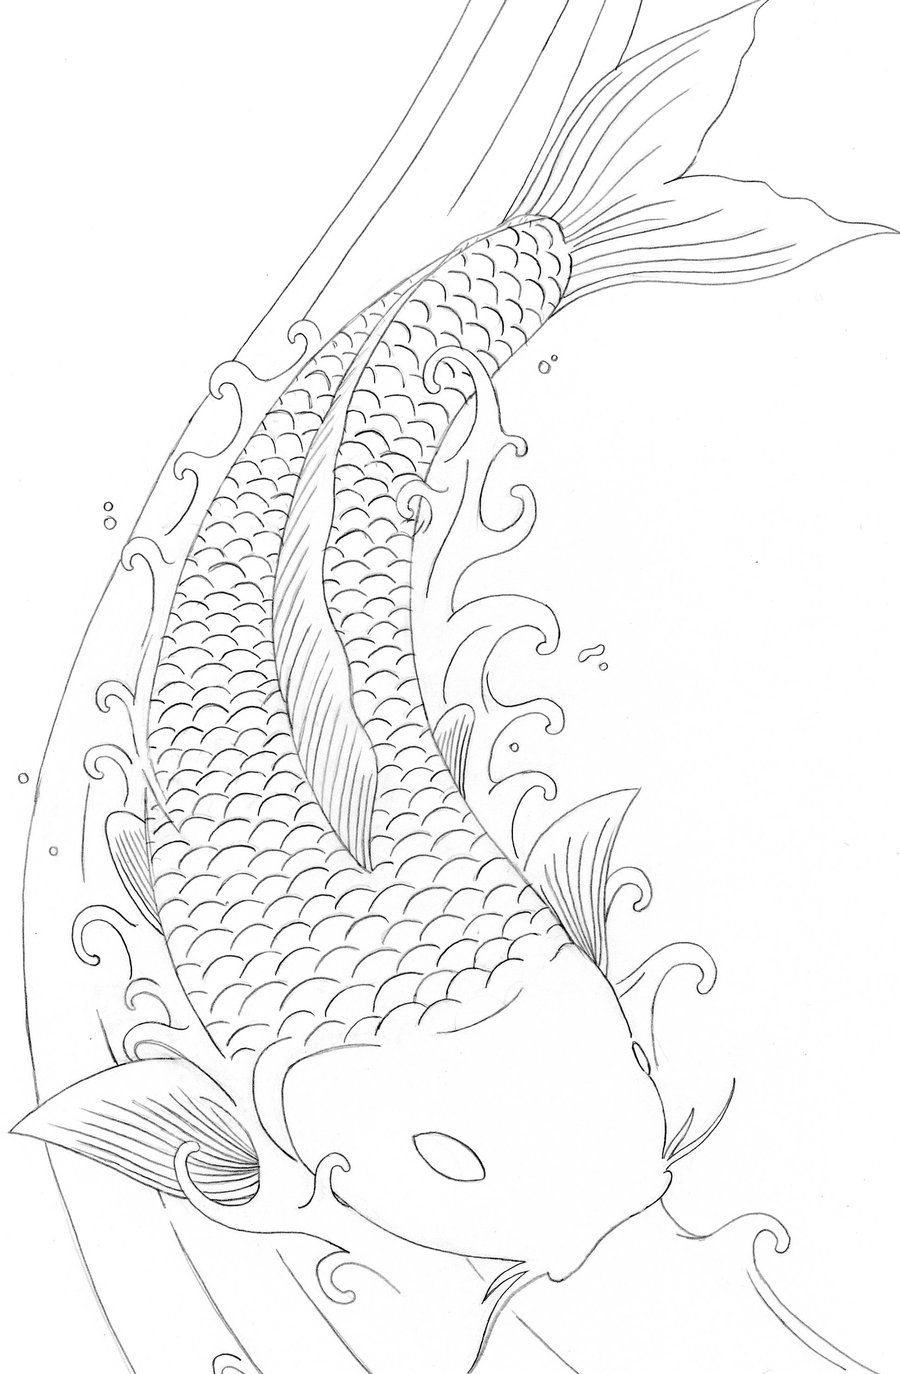 Koi Fish Colouring Pages Cakepins Com Koi Fish Colors Koi Fish Drawing Fish Coloring Page